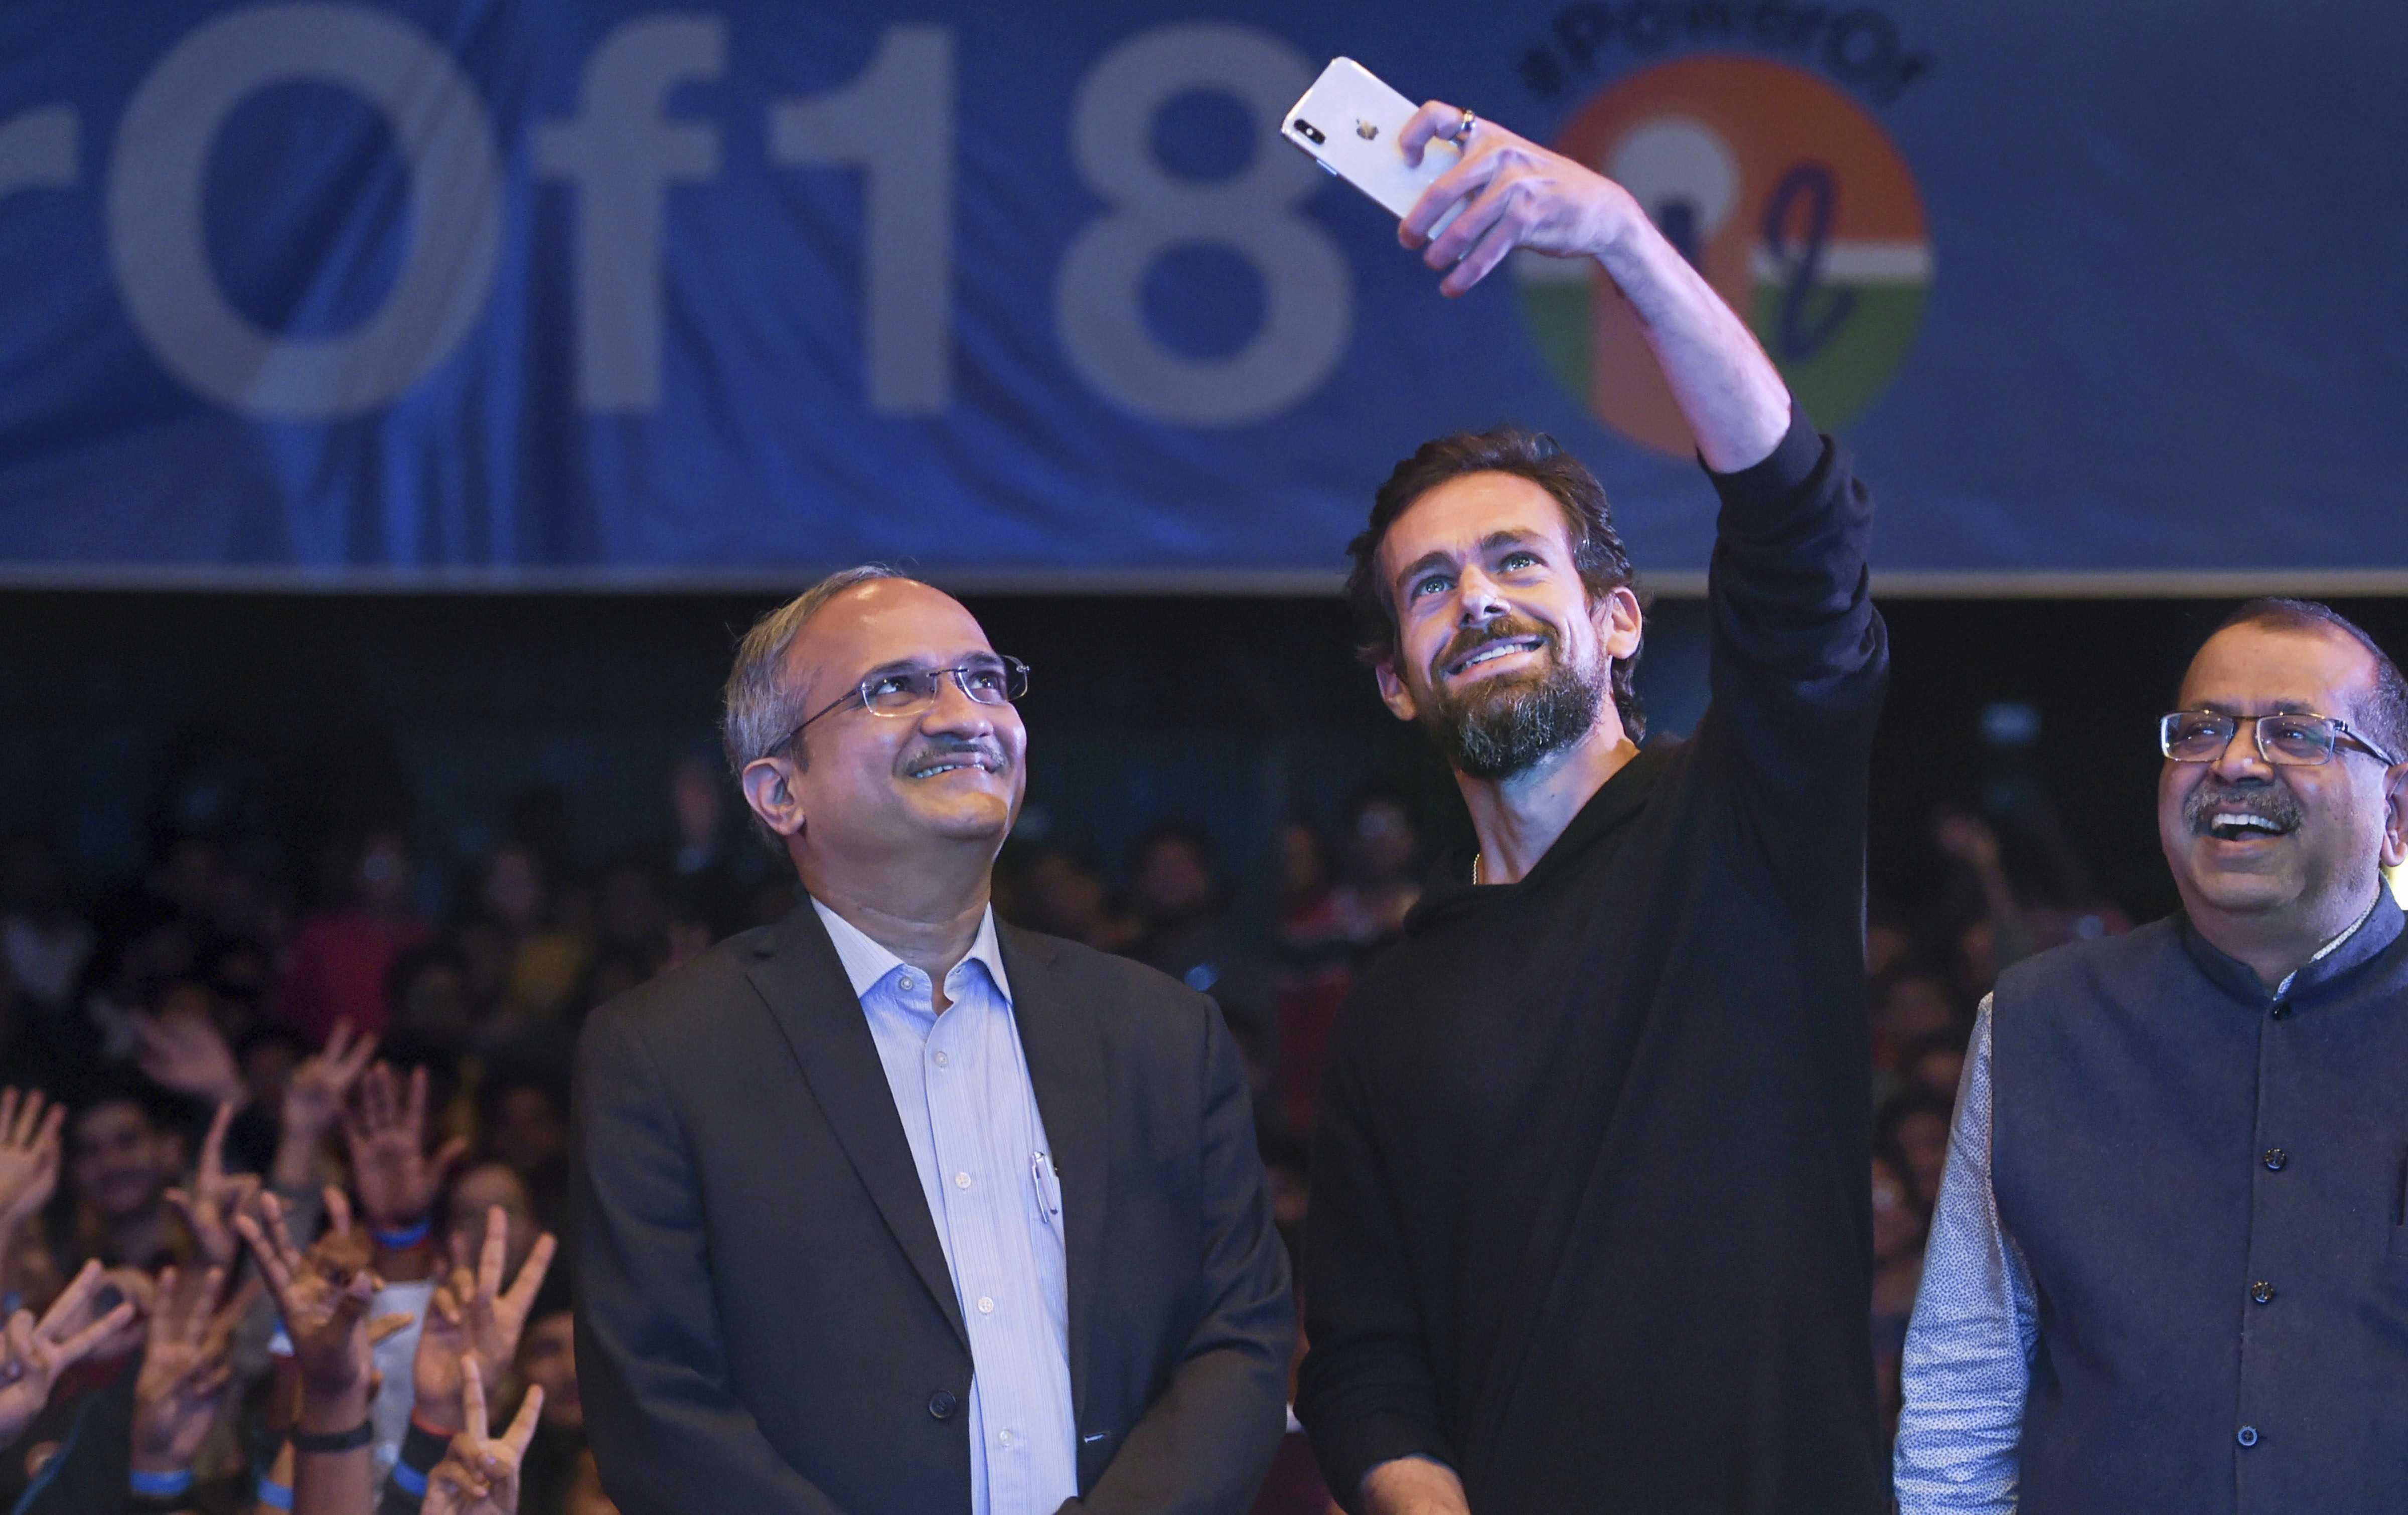 Twitter CEO and co-founder Jack Dorsey takes selfie with a faculty member of IIT Delhi, in New Delhi - PTI